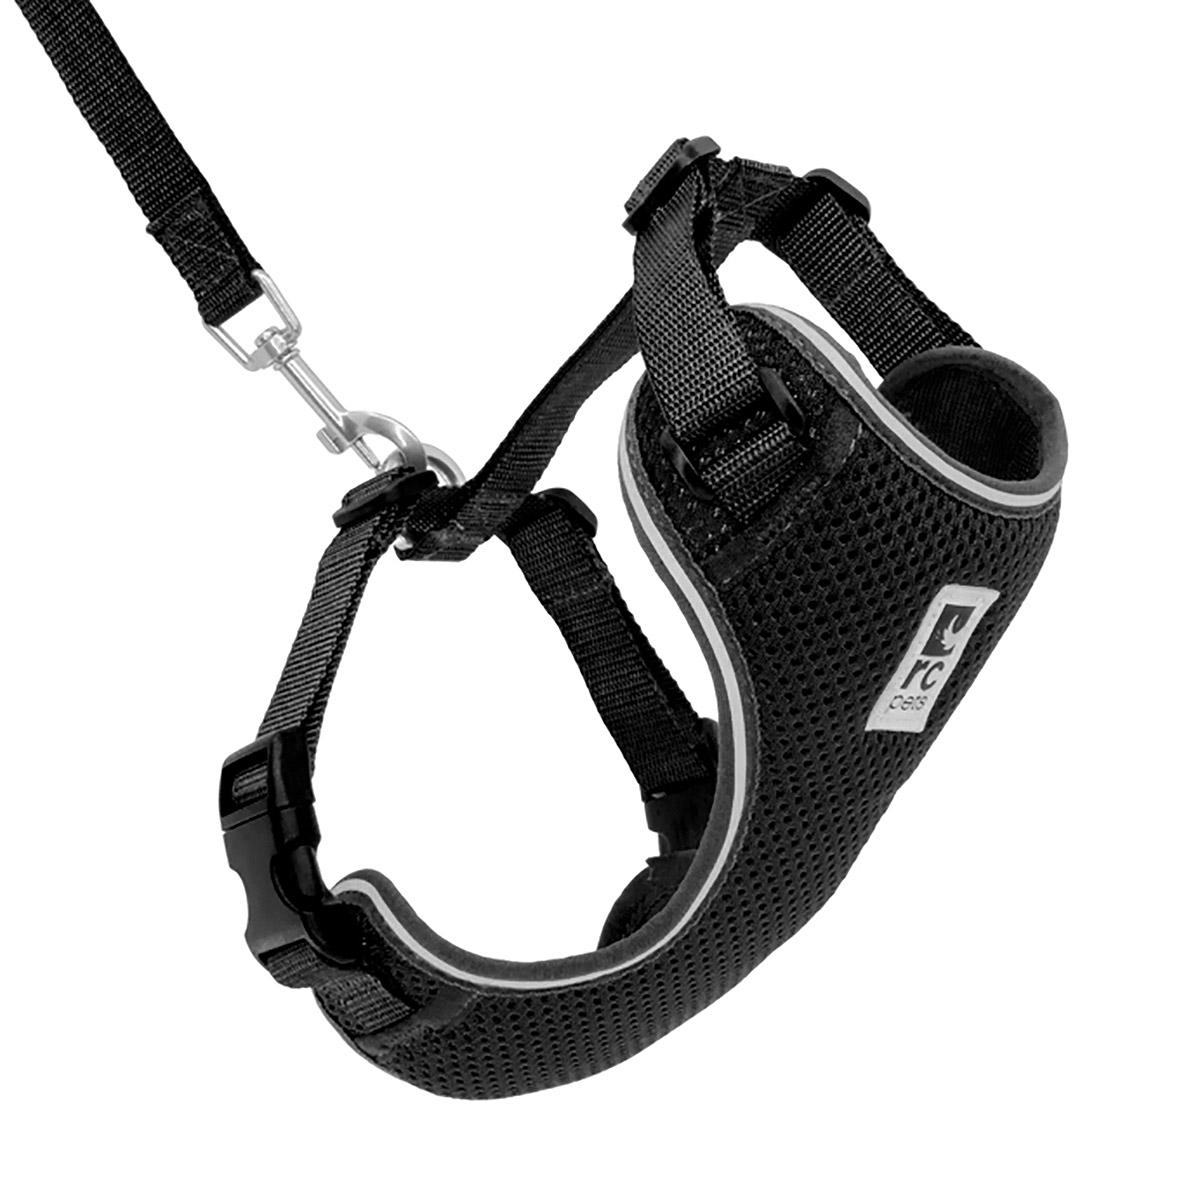 Adventure Kitty Cat Harness with Leash by RC Pets - Black